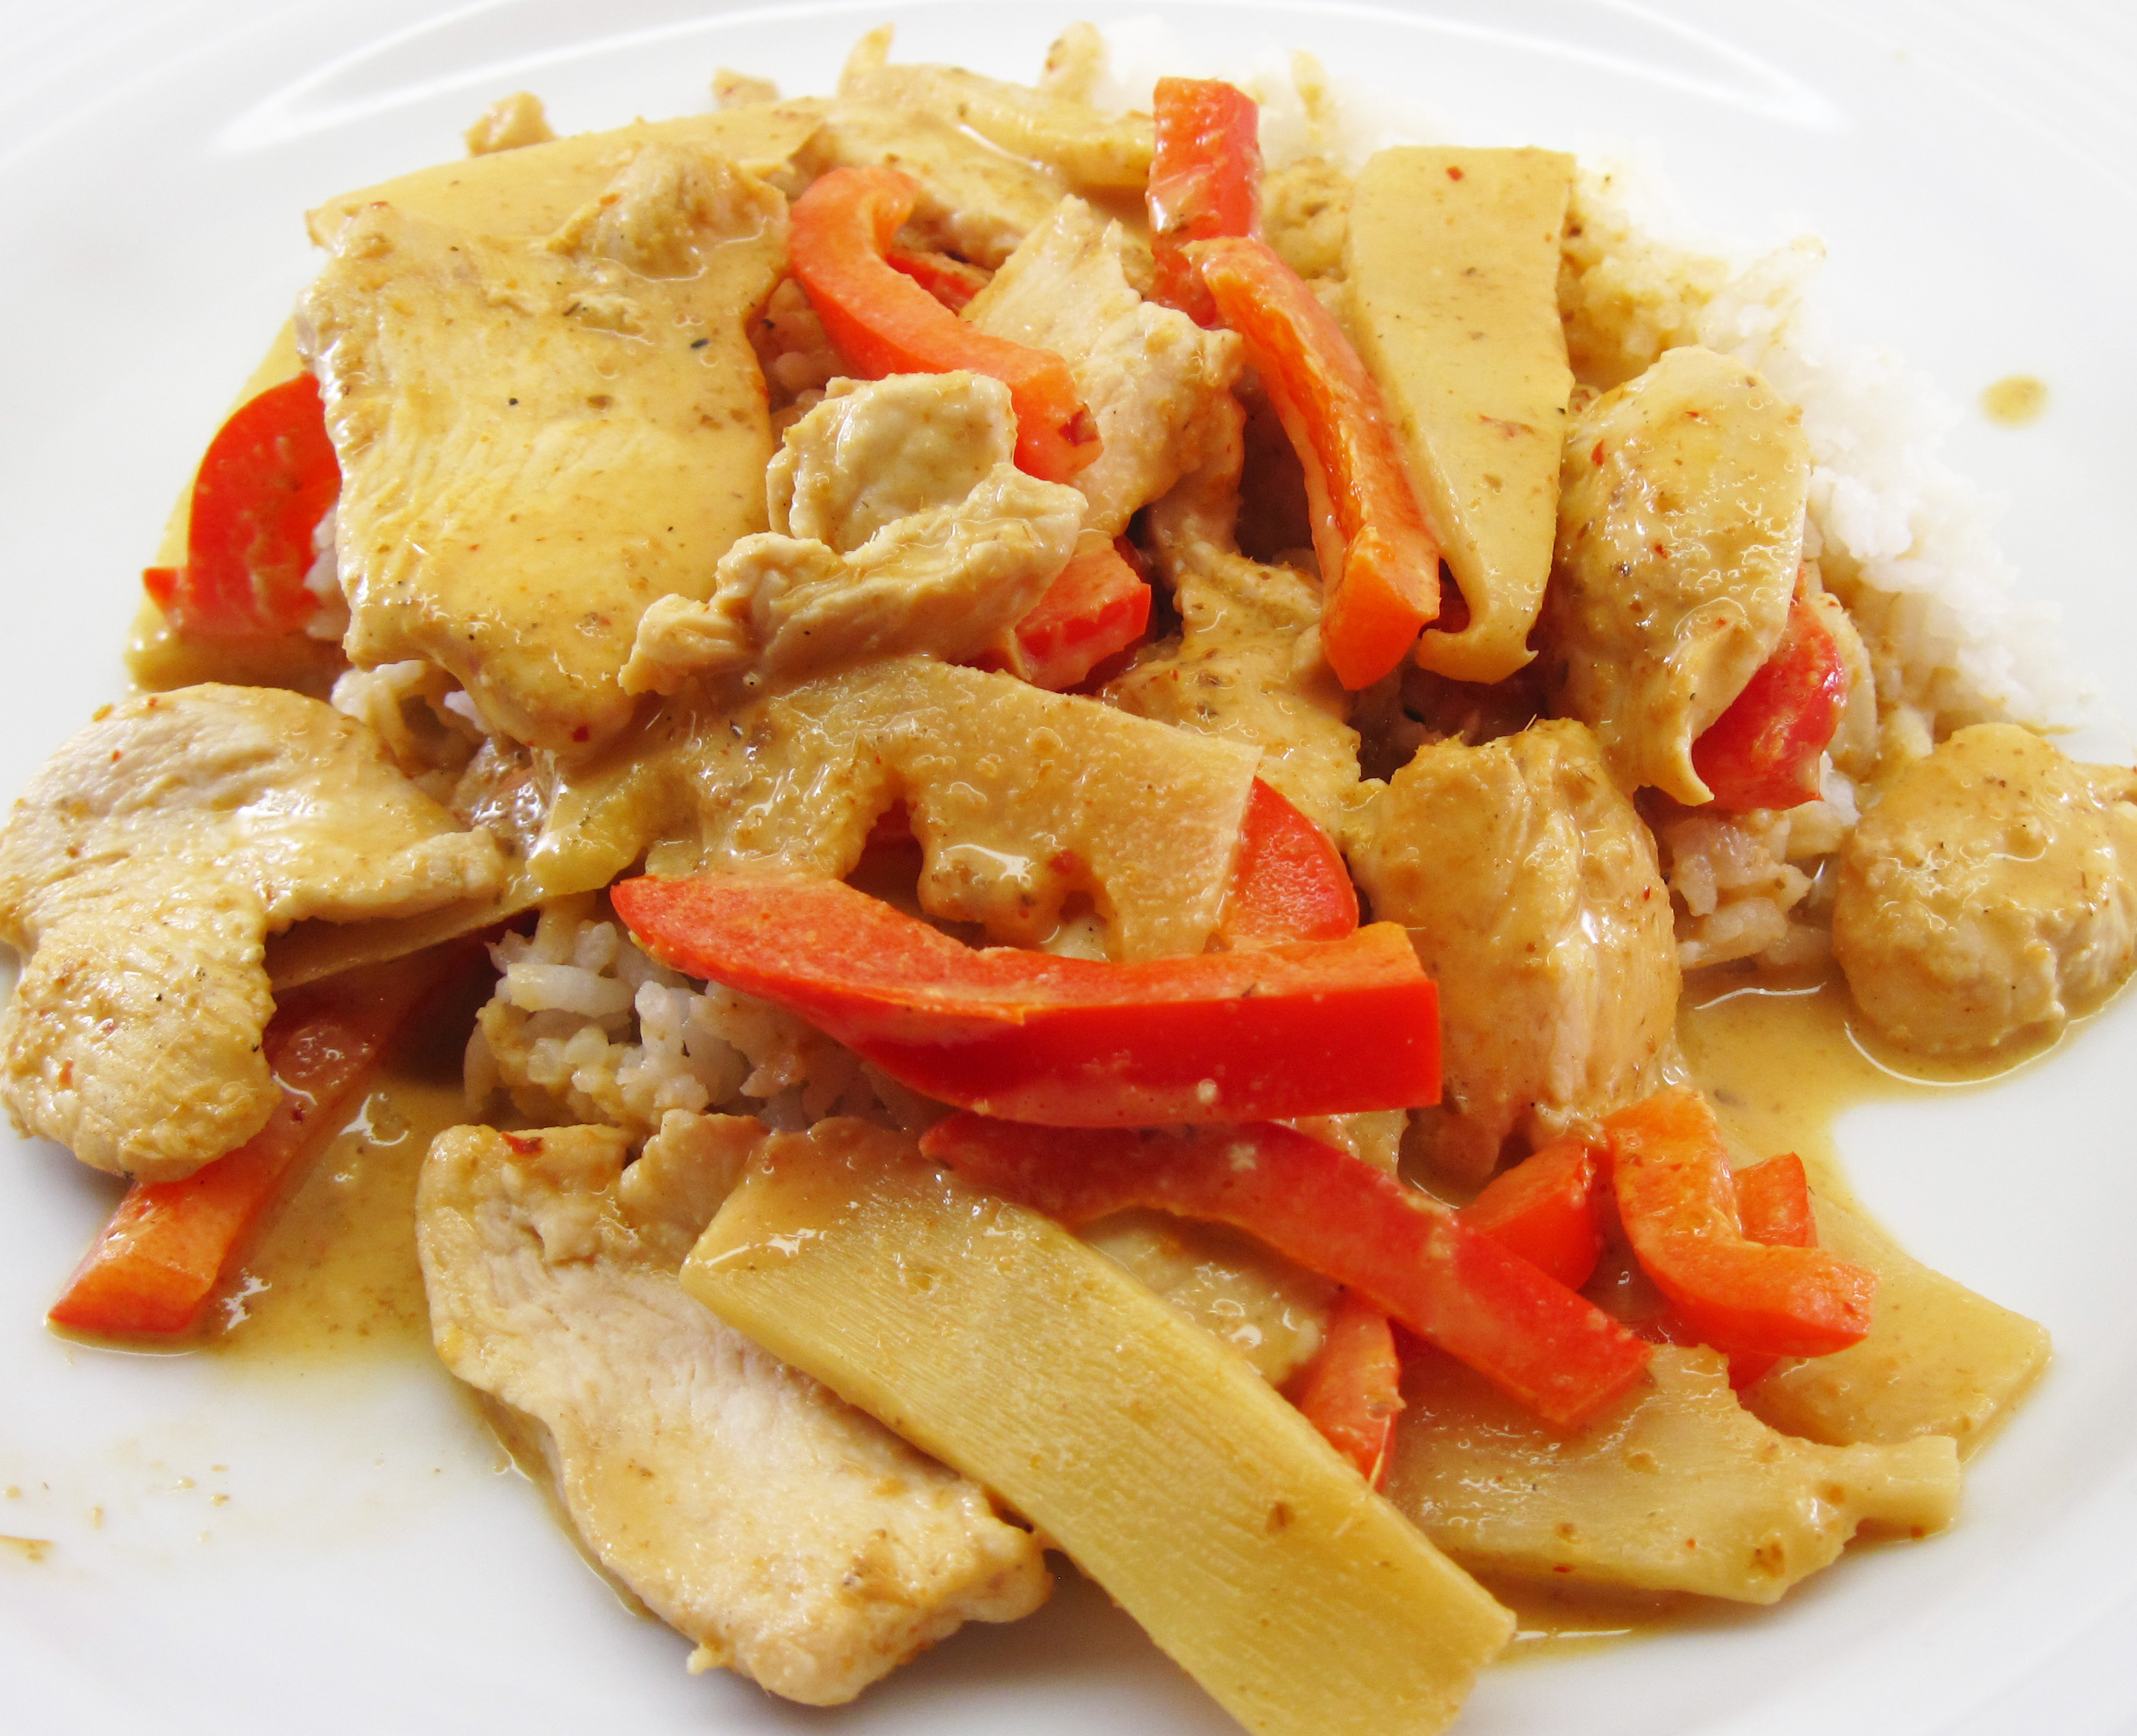 Thai Panang Curry with Chicken (Panang Gai)